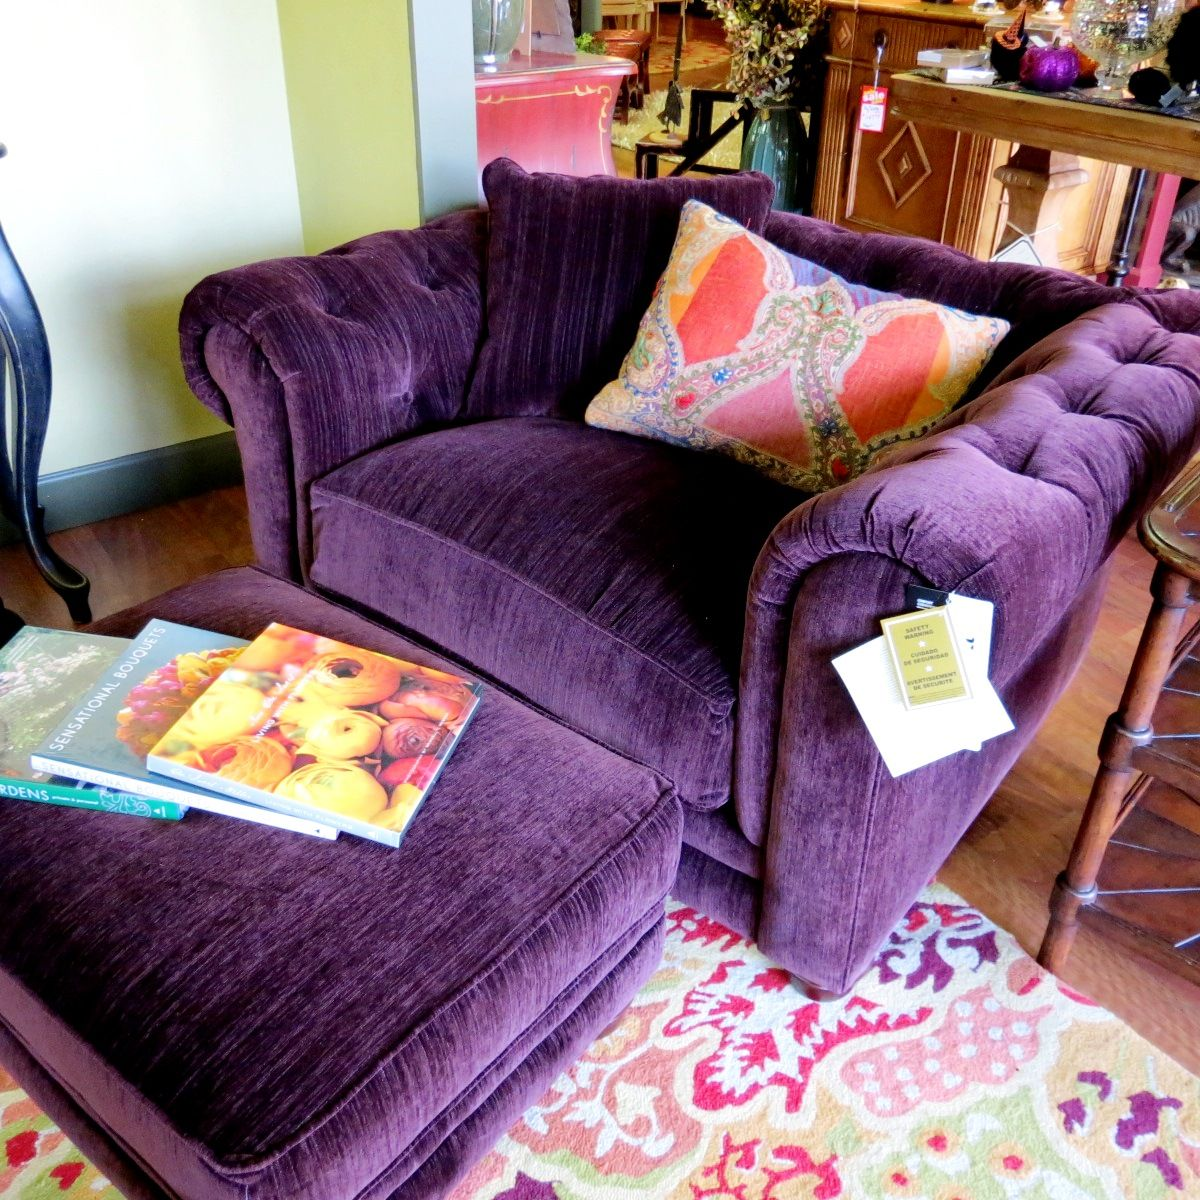 this purple chair rocks this would be my favorite spot to read and rh pinterest com